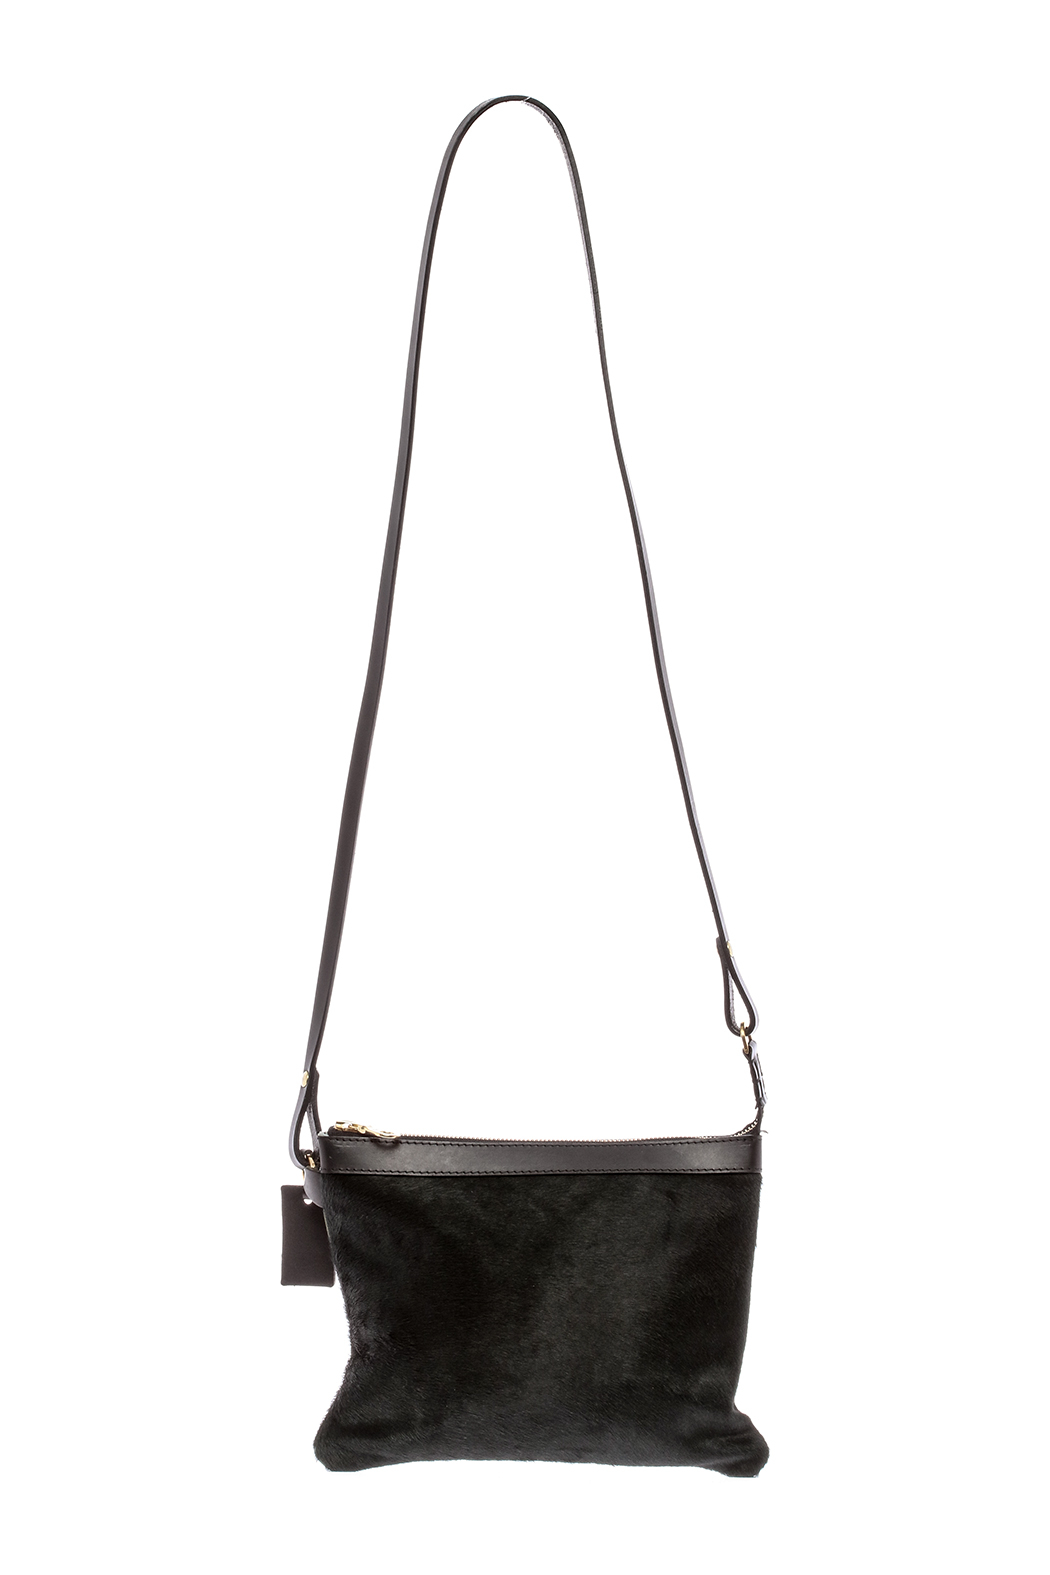 Alisa Smirnova Cowhide Leather Sling Bag - Main Image